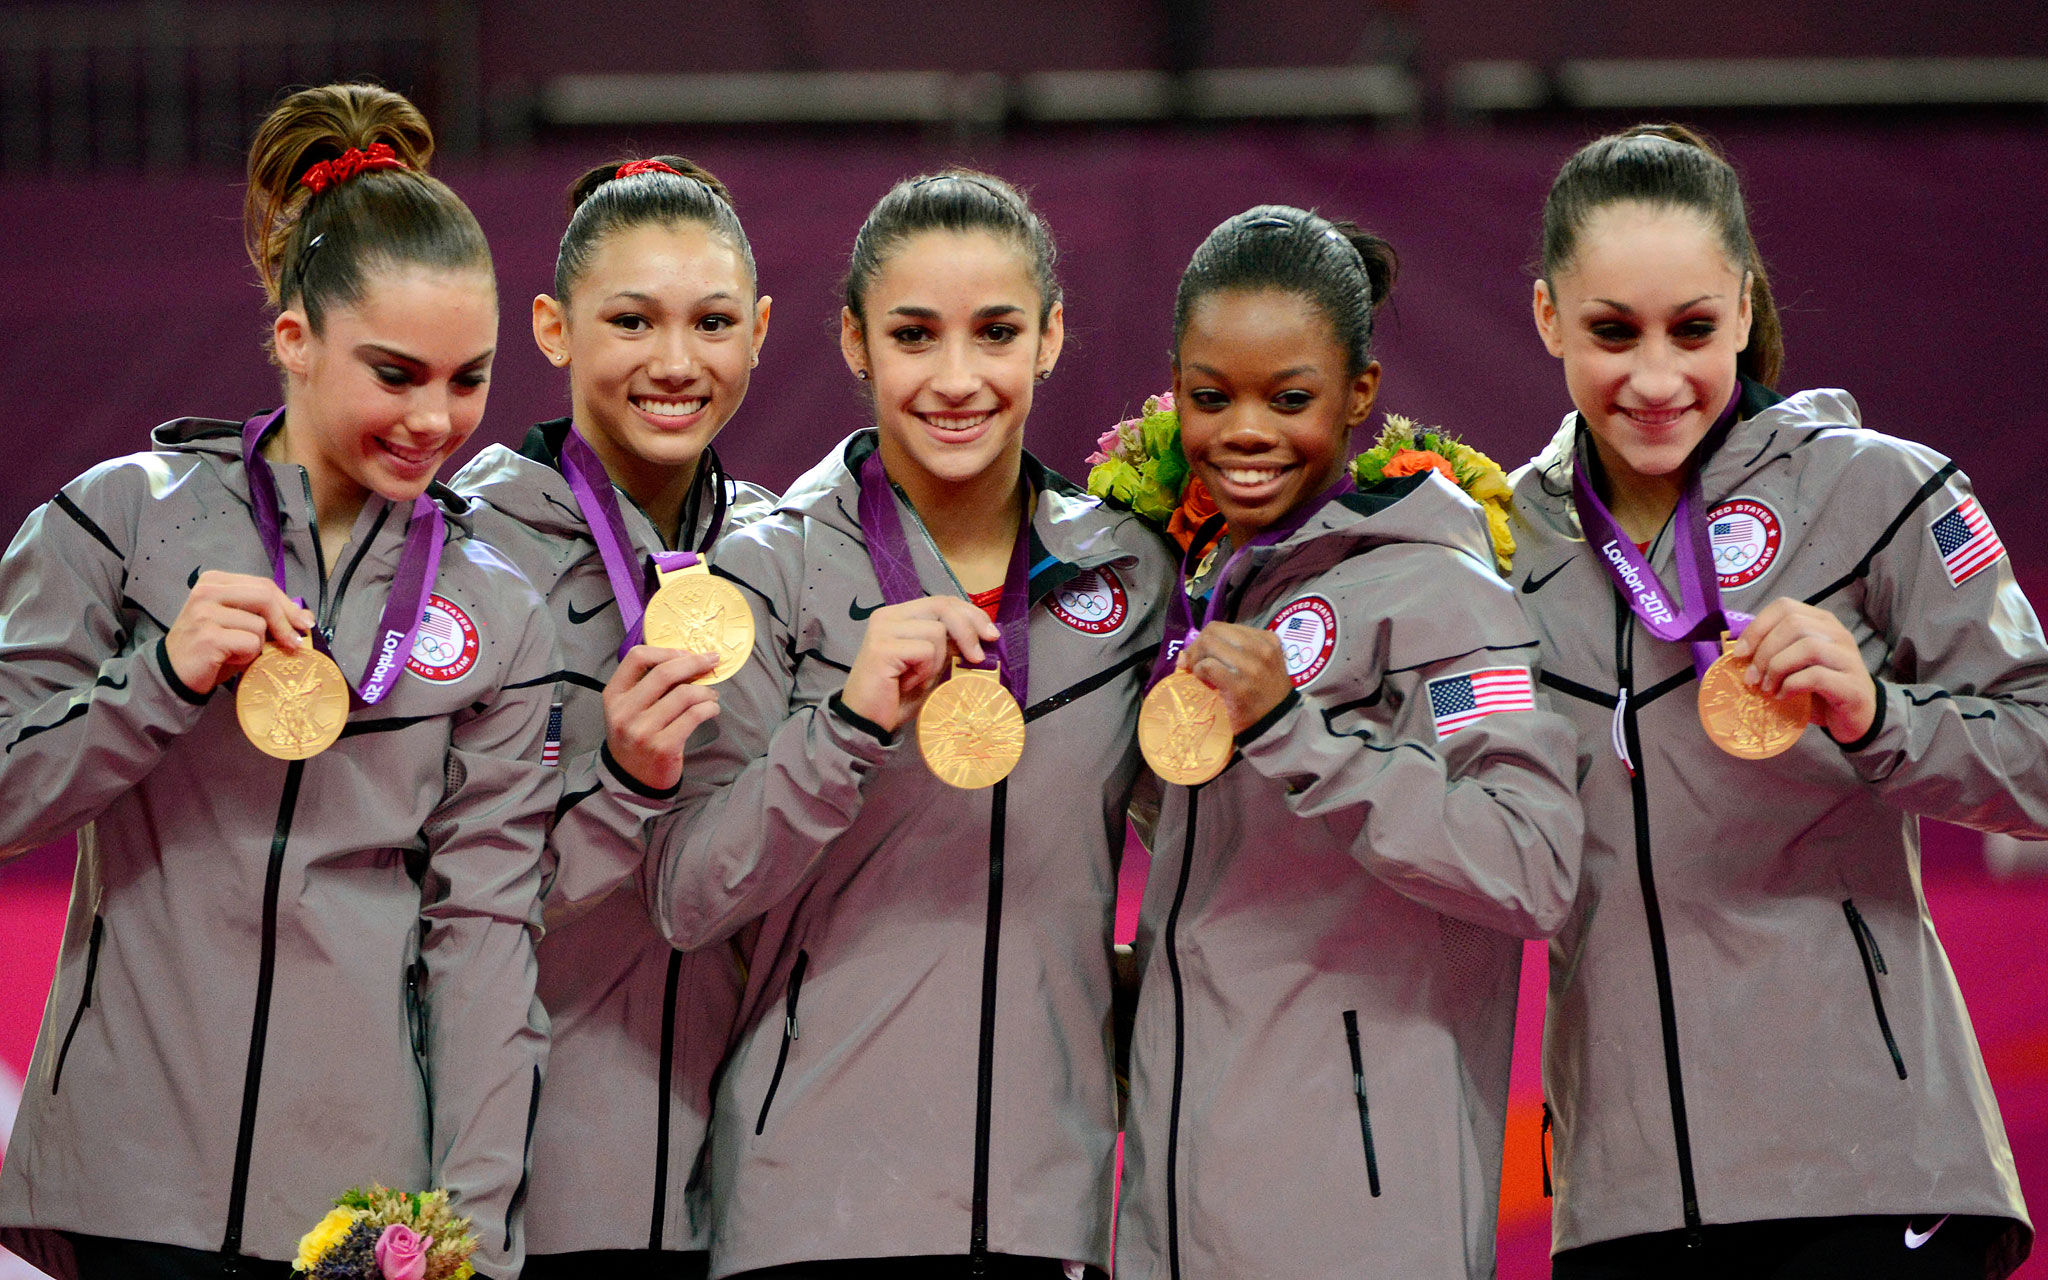 5. Raisman leads Team USA To Gold